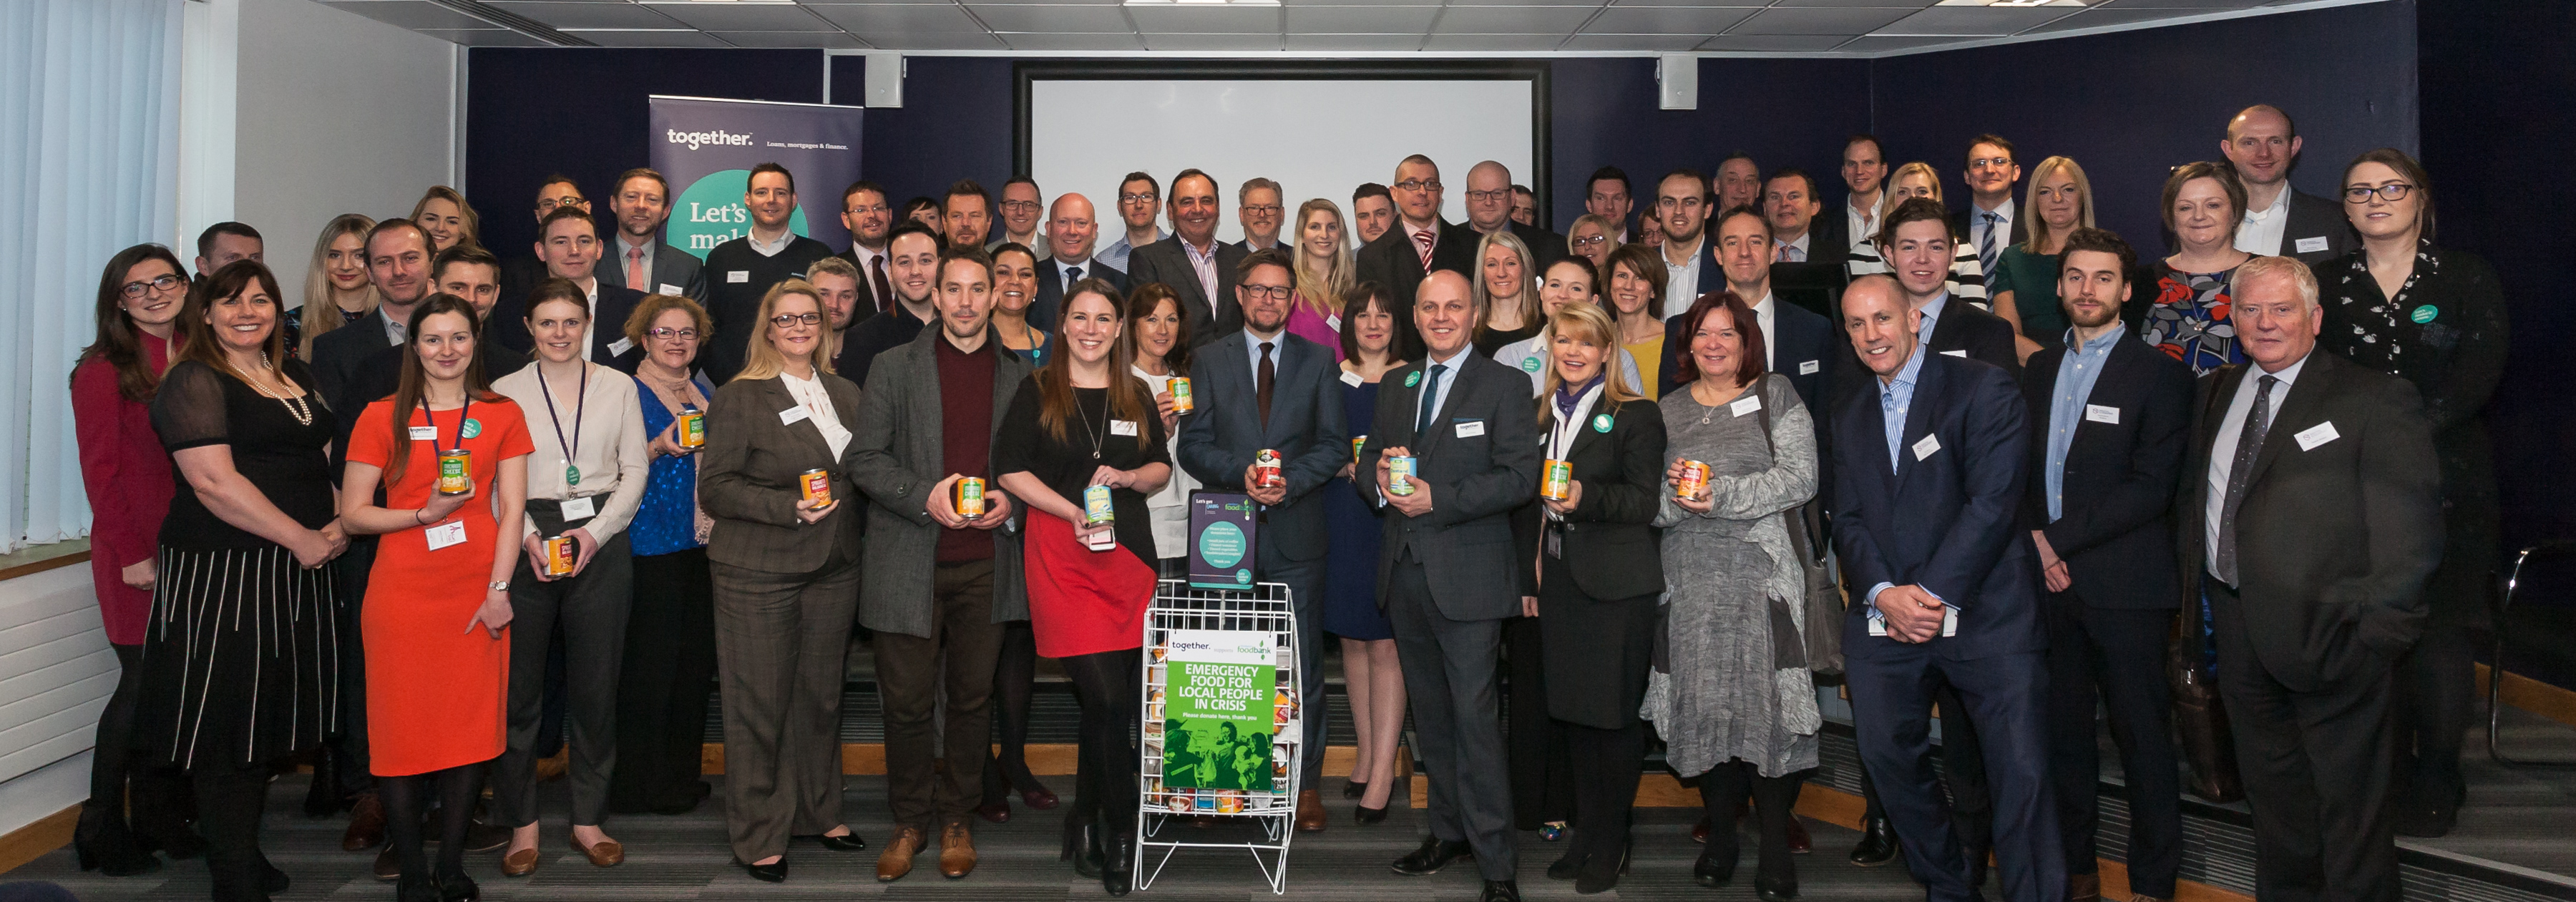 Together Community Foodbank with Marketing Stockport